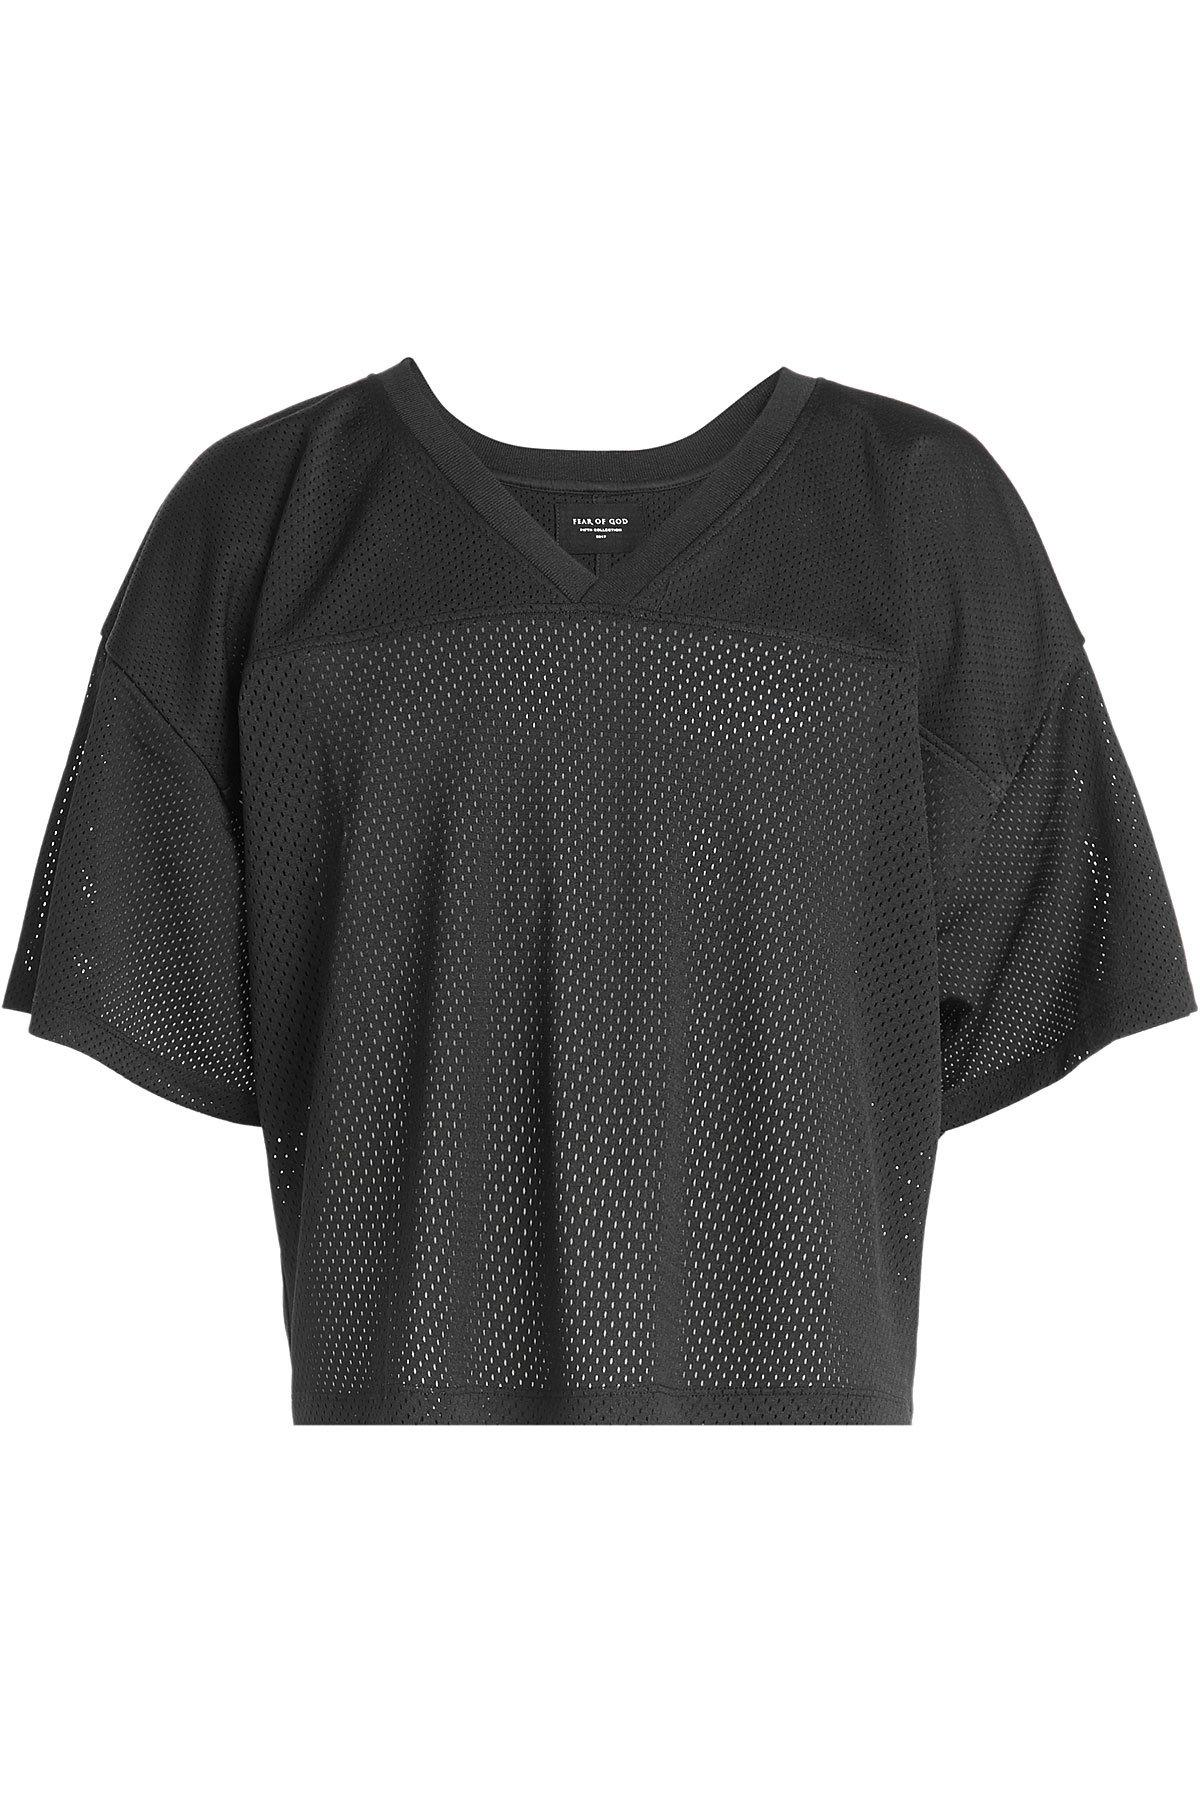 Fear Of God Mesh T-Shirt In Black